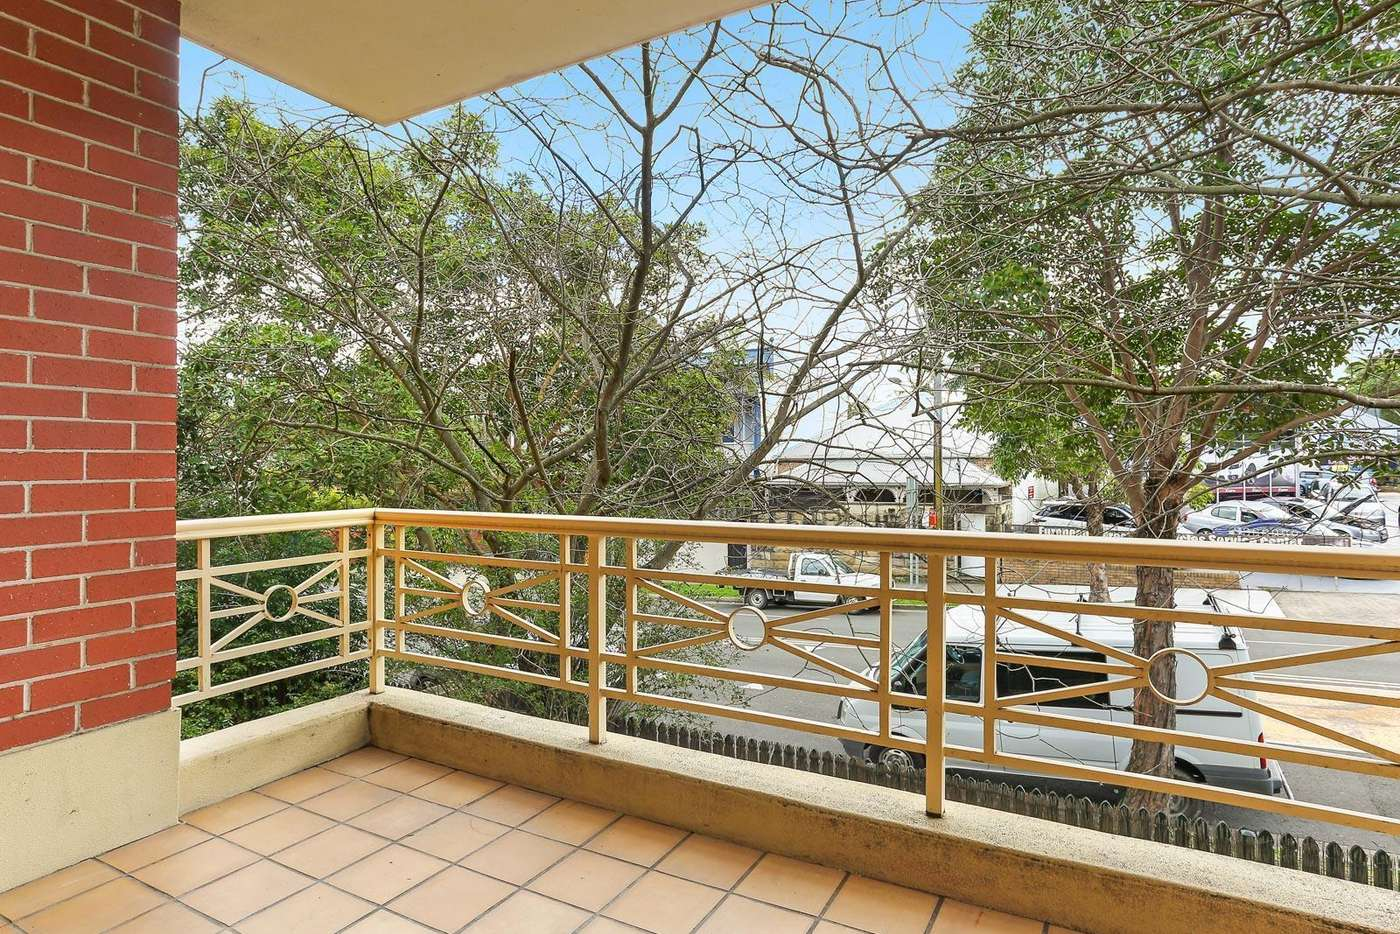 Main view of Homely apartment listing, 8/143 Ernest Road, Crows Nest NSW 2065